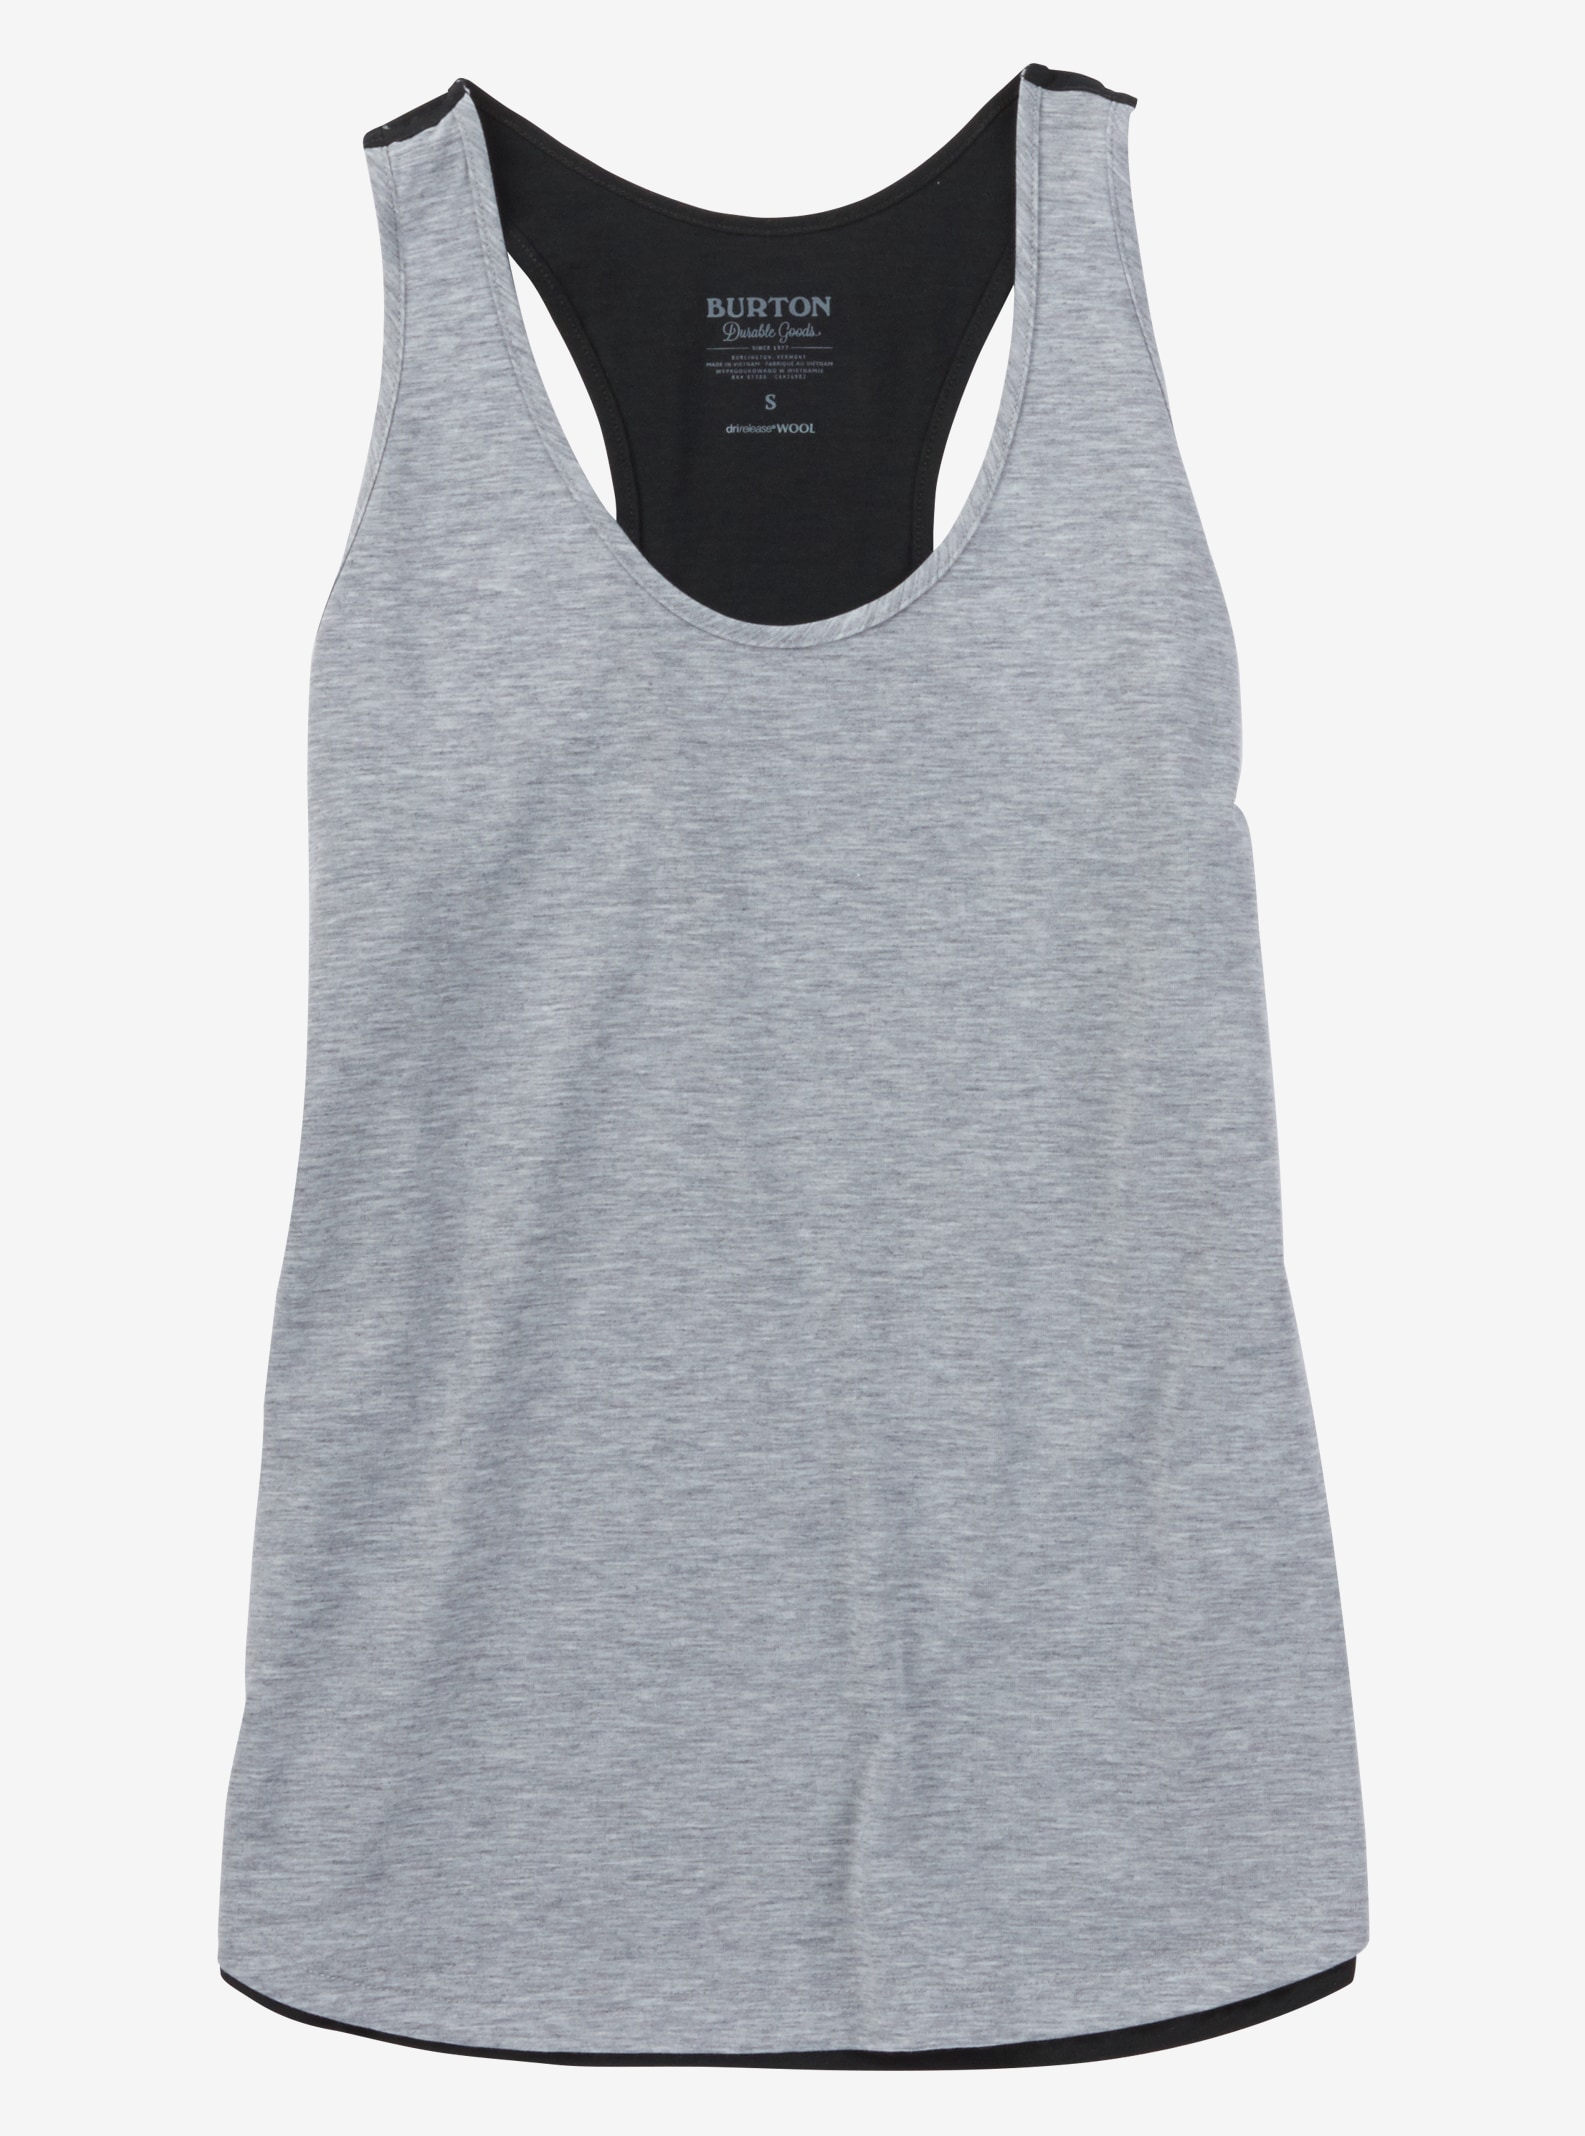 Burton Step Out Tank shown in Gray Heather